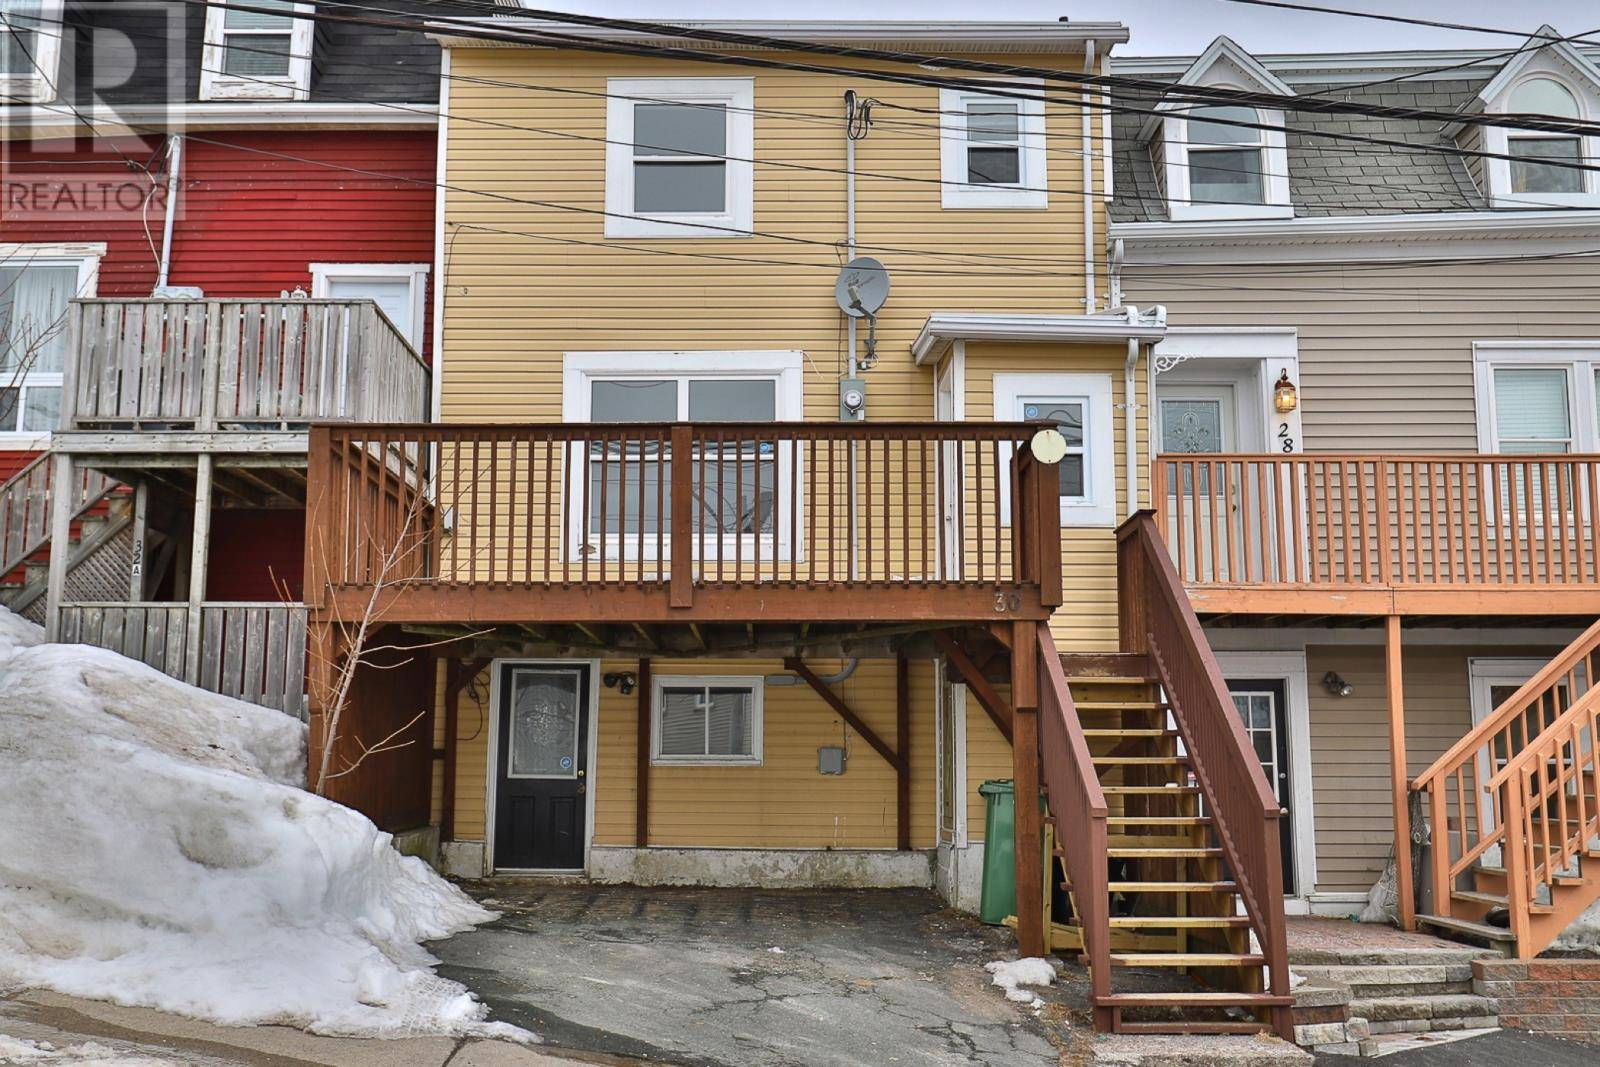 House for sale at 30 Barters Hill Pl St. John's Newfoundland - MLS: 1212070